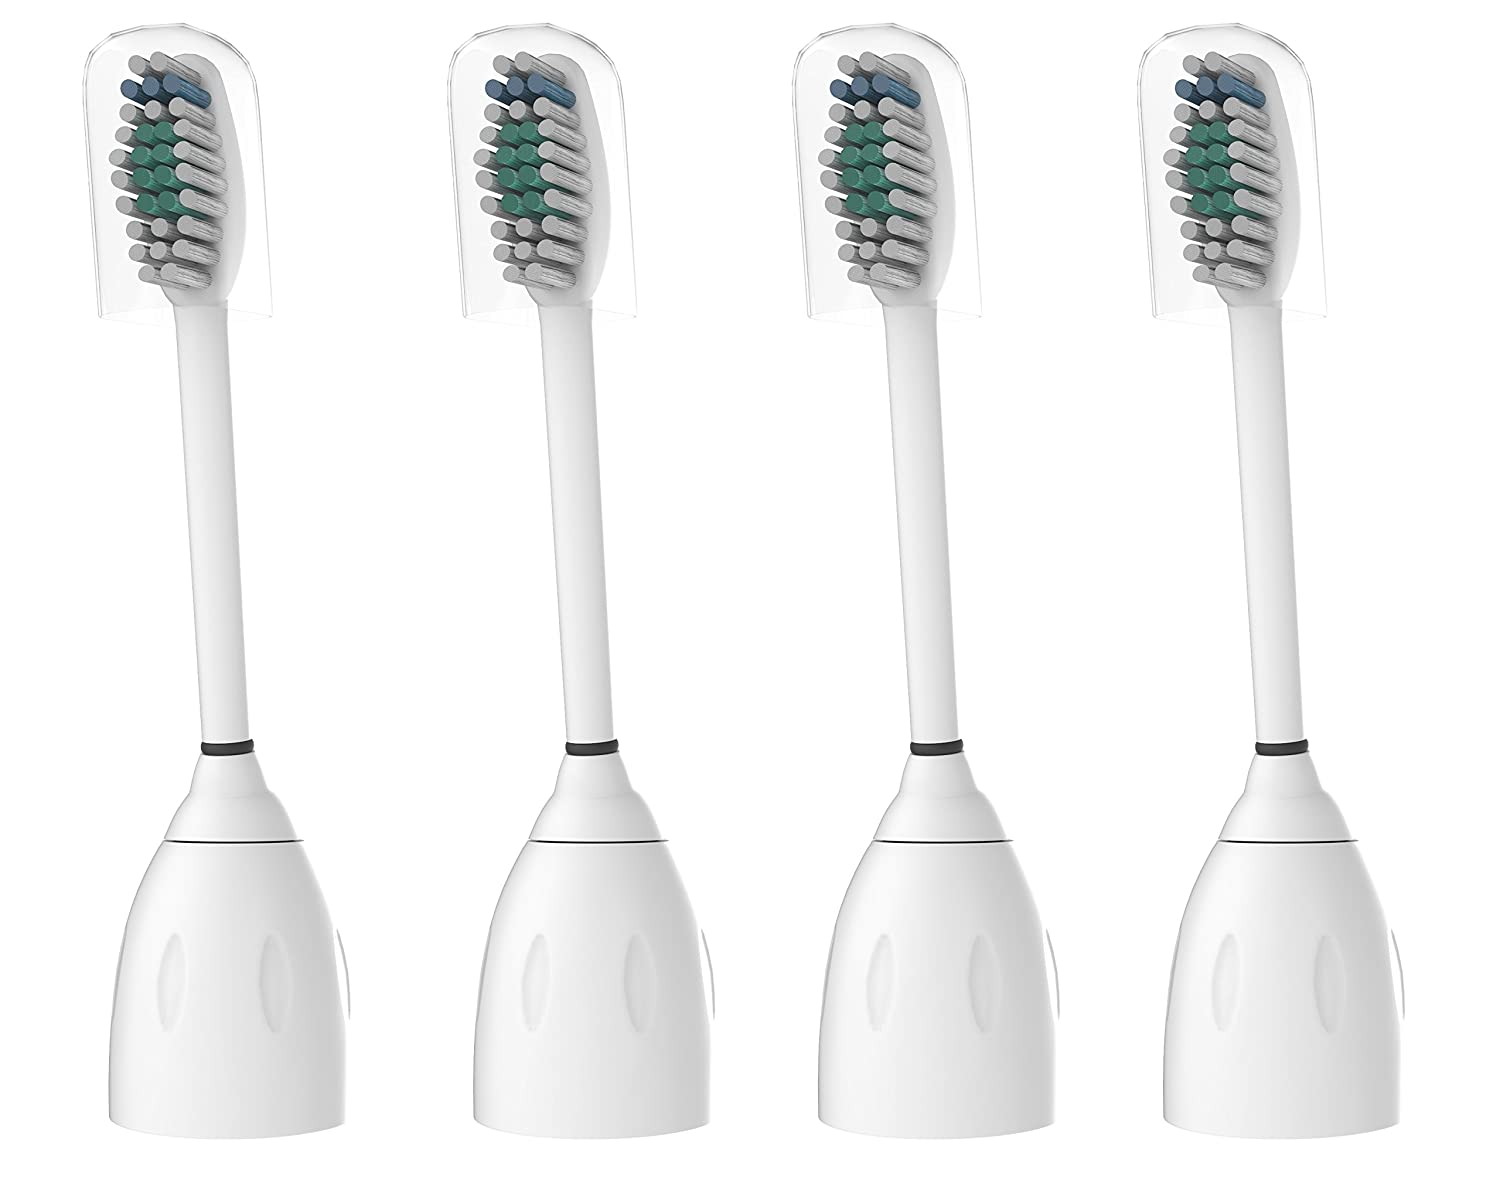 Oliver James Replacement Toothbrush Heads for Philips Sonicare E-Series HX7001 HX7002 HX7022 fits Essence, Xtreme, Elite, Advance and CleanCare - 4 pack with caps